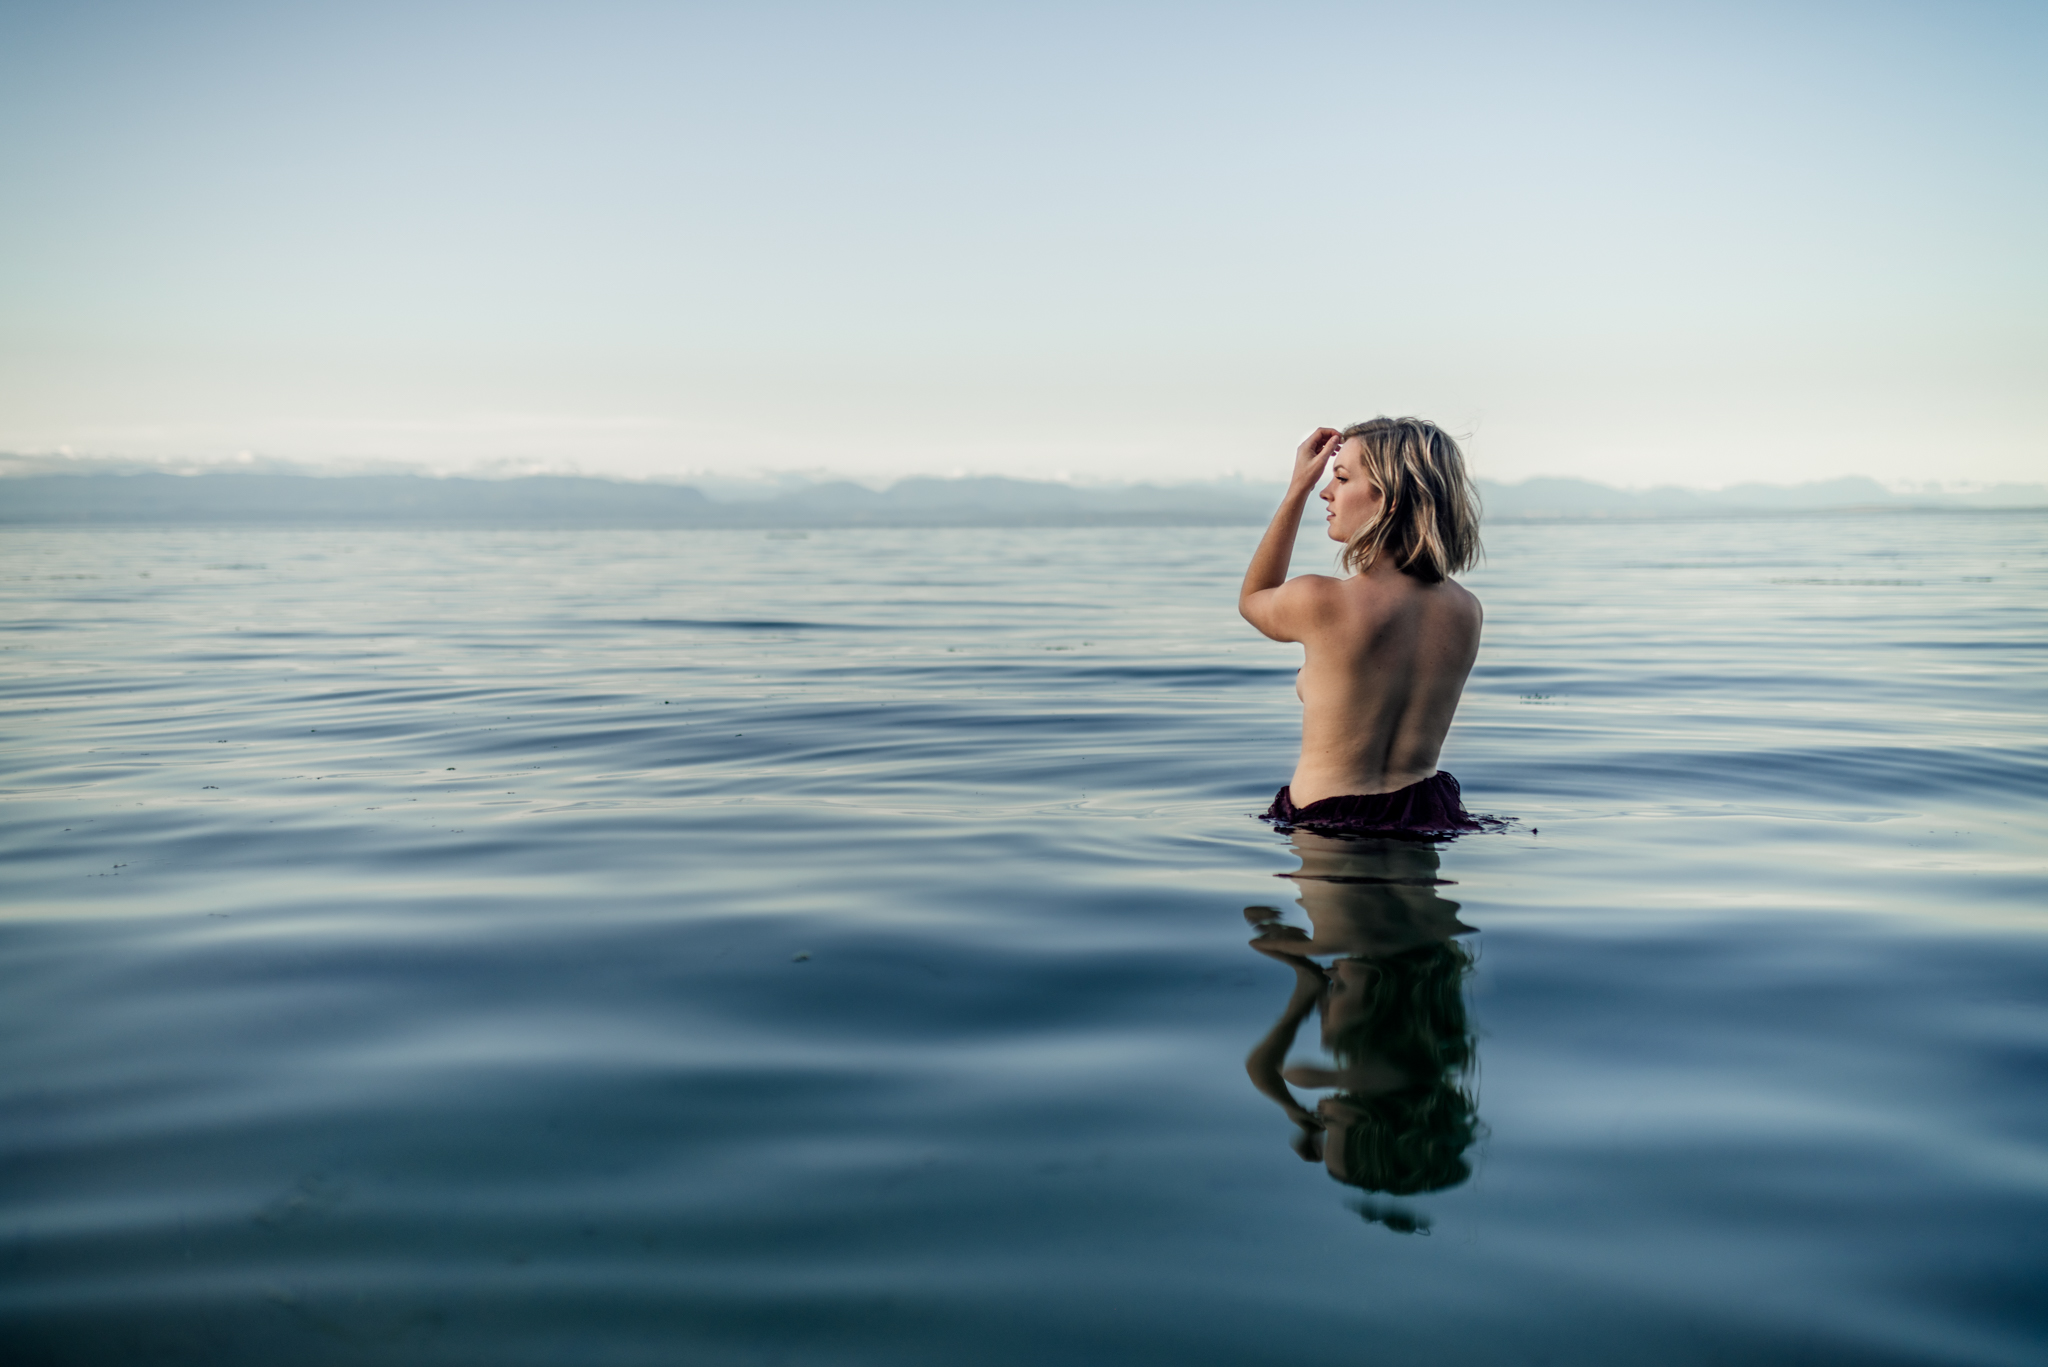 back of woman in the water at sea during lifestyle photography portrait shoot